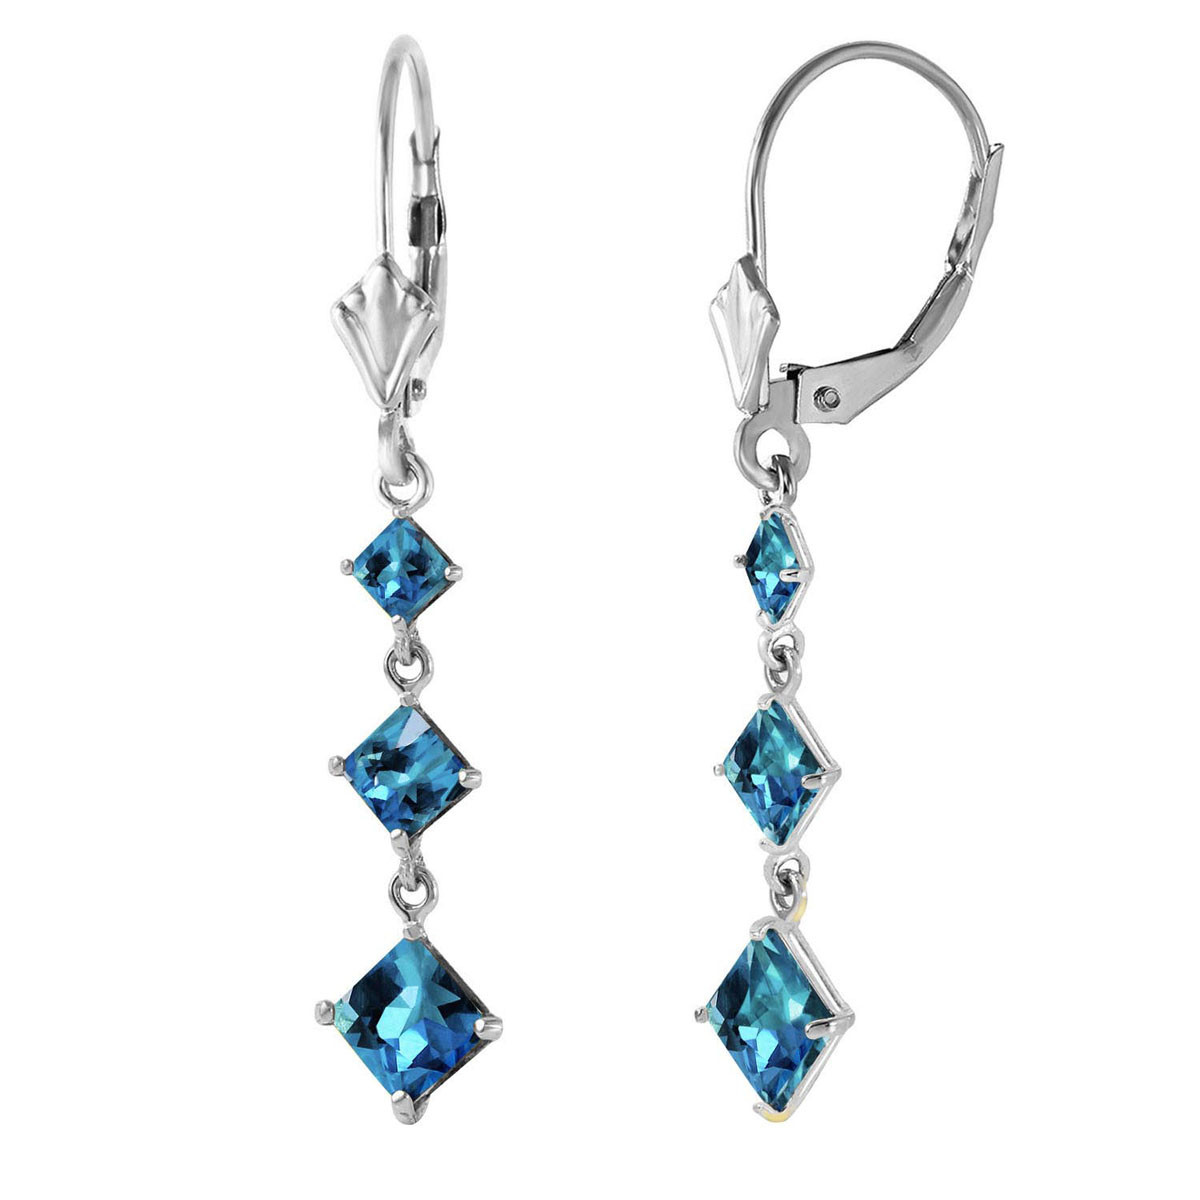 Blue Topaz Three Stone Drop Earrings 4.79 ctw in 9ct White Gold